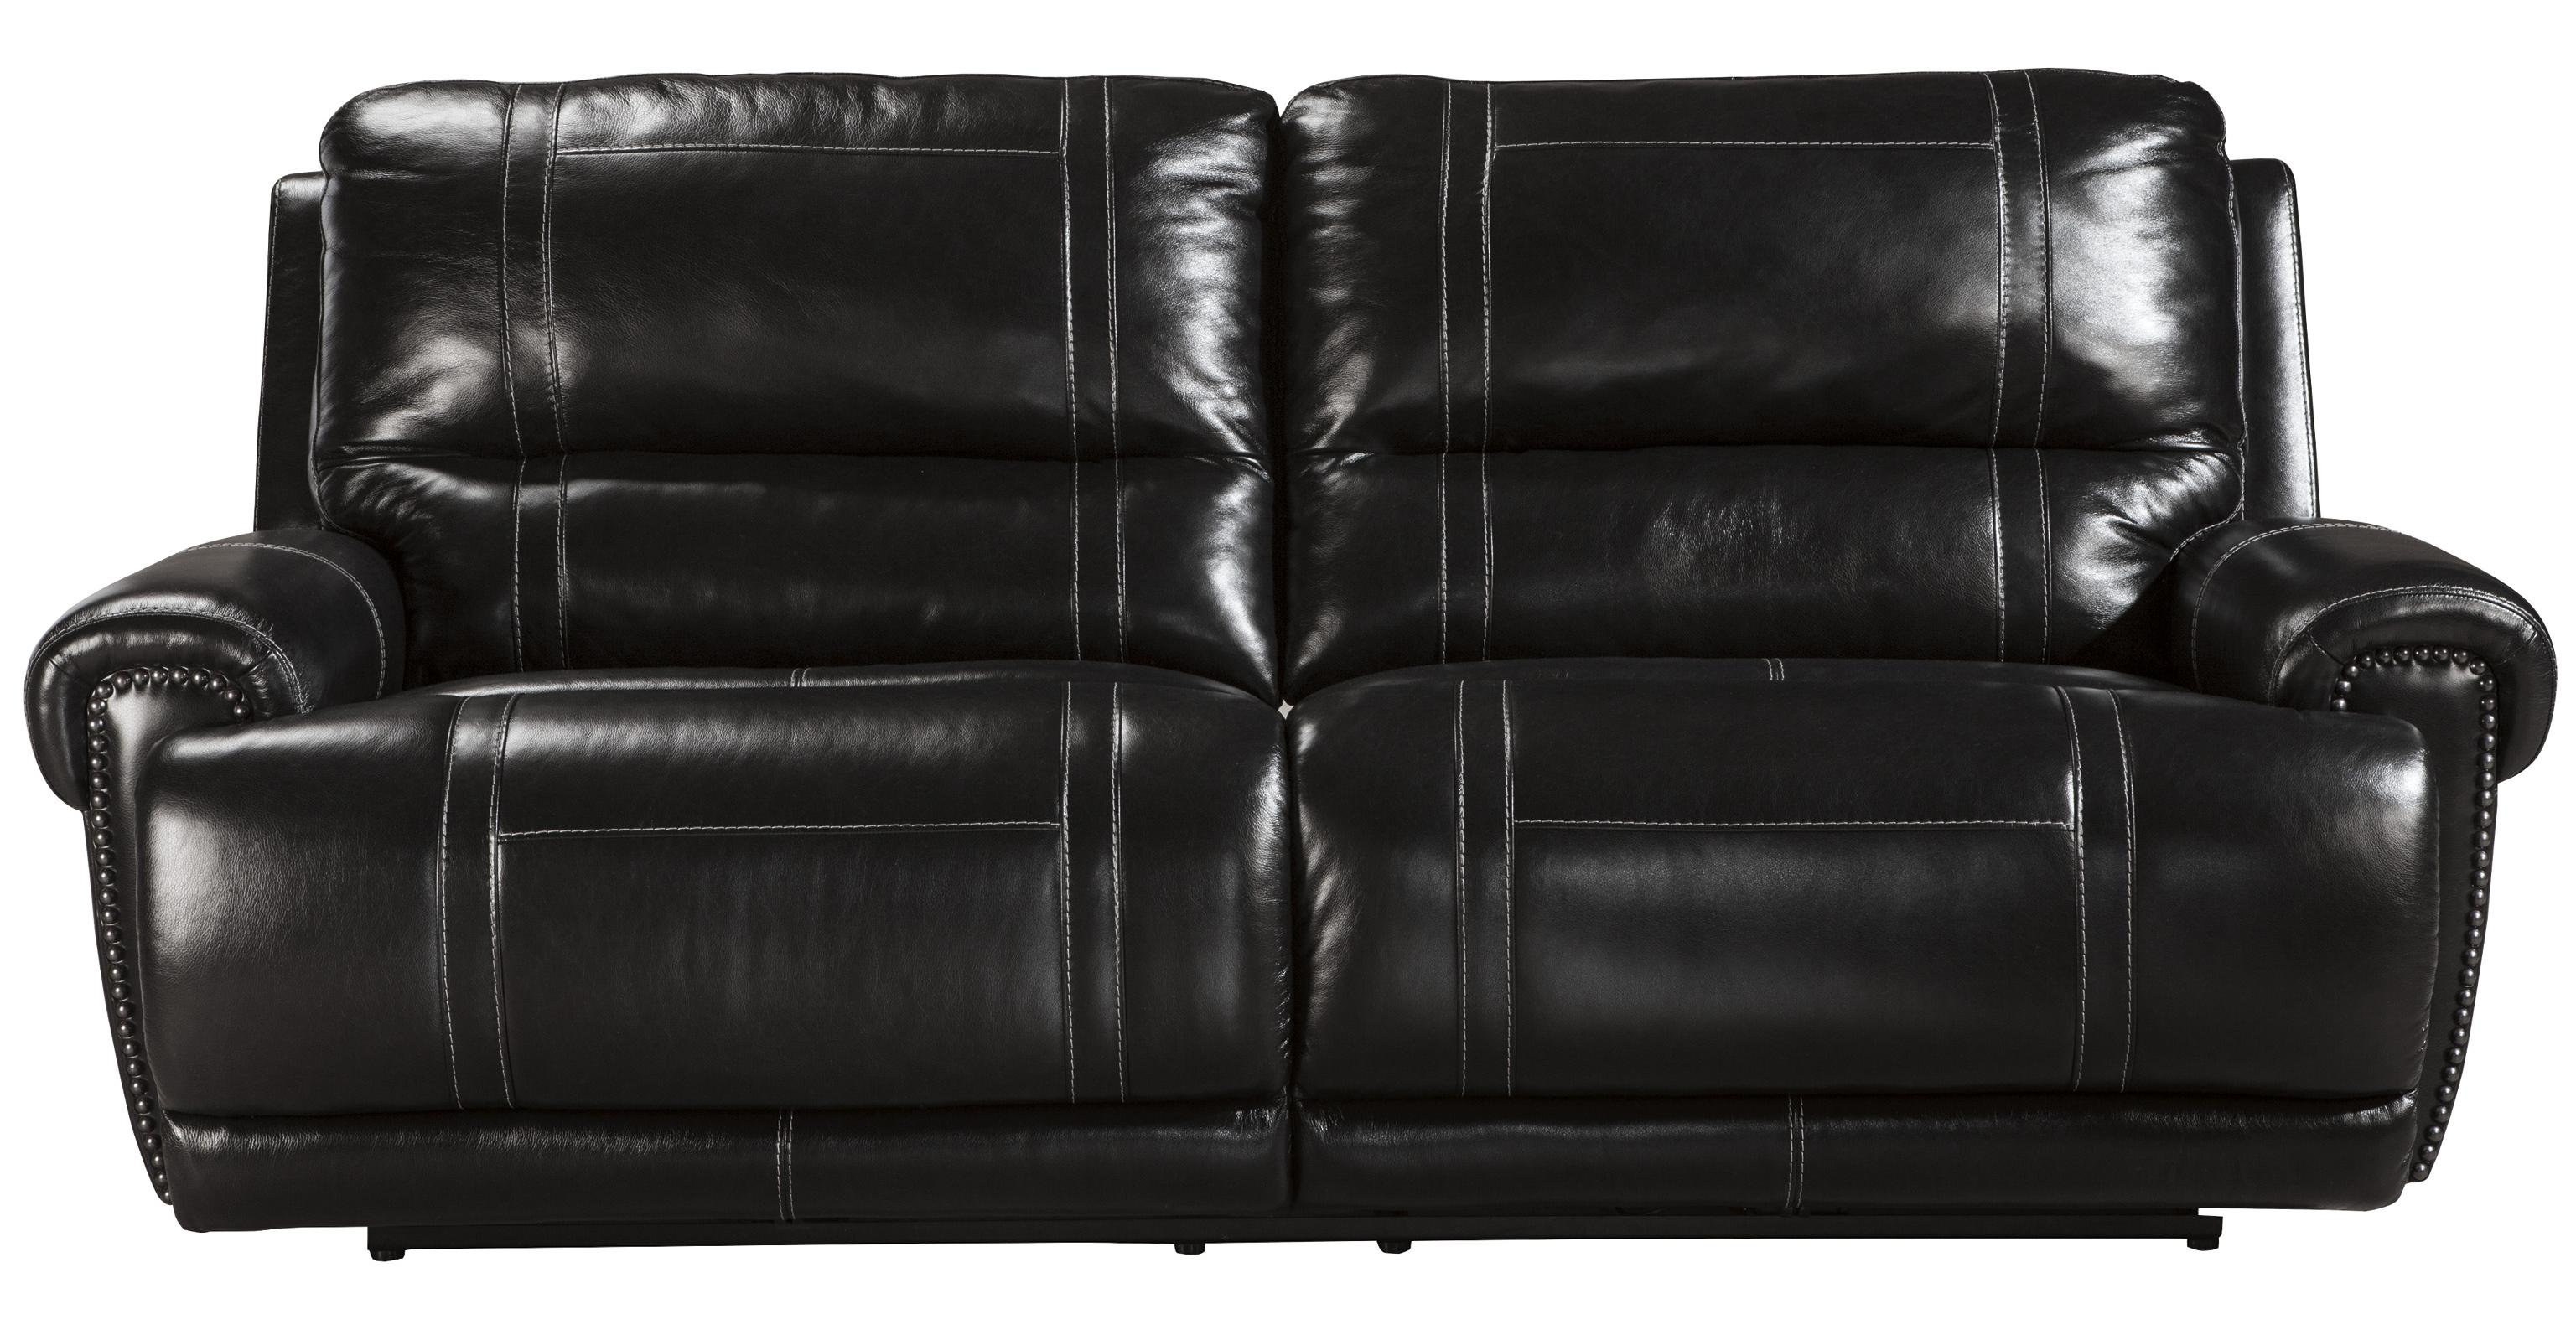 Signature Design by Ashley Paron - Antique 2 Seat Reclining Sofa - Item Number: U7590181